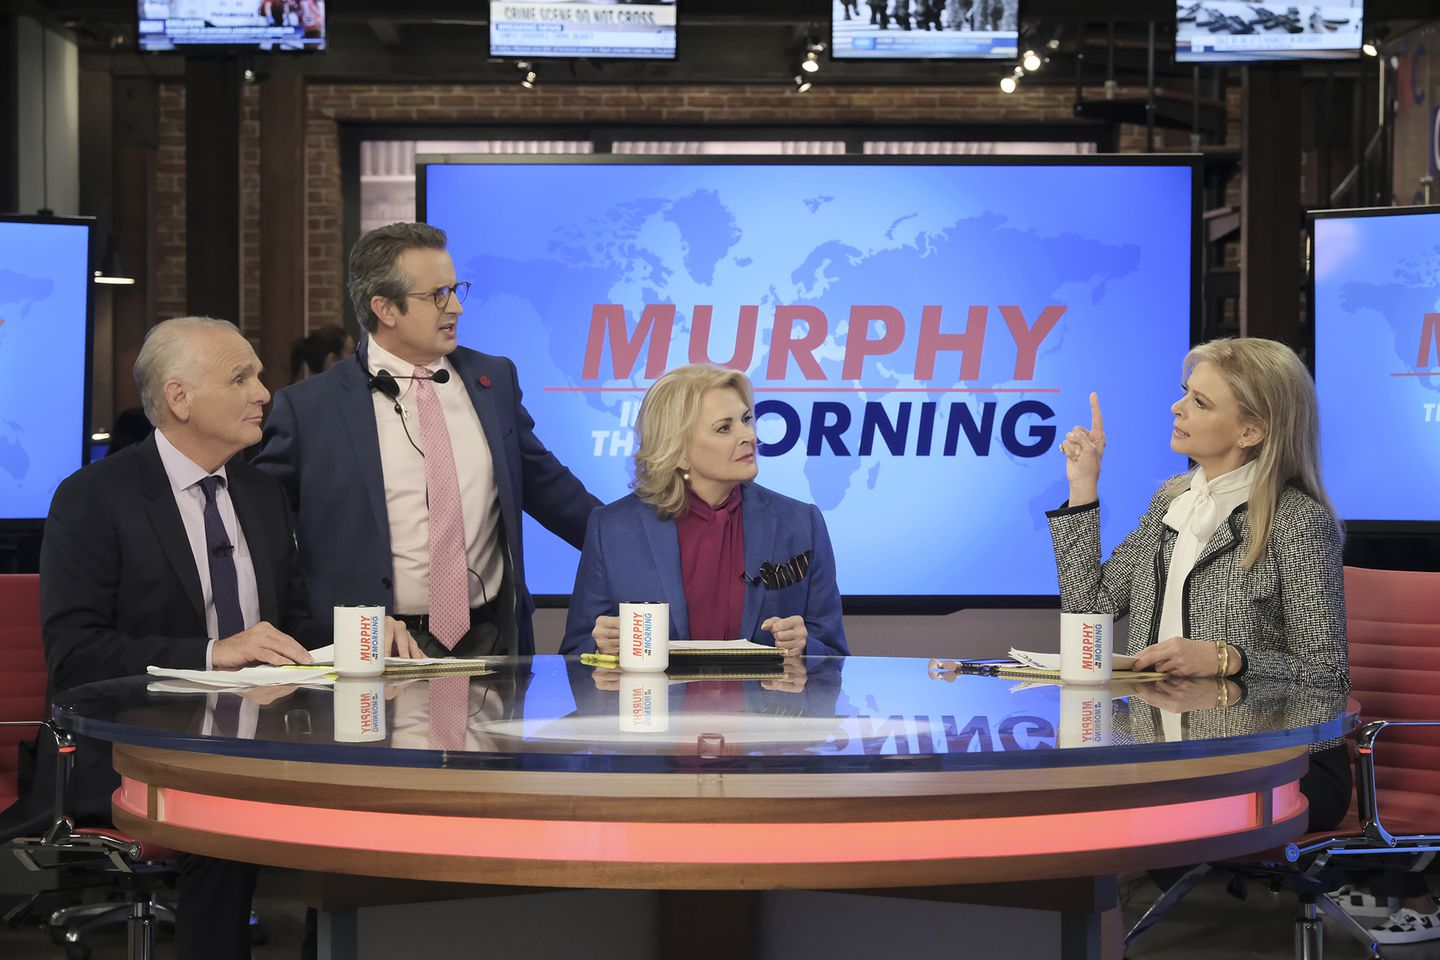 Pictured L-R: Joe Regalbuto as Frank Fontana, Grant Shaud as Miles Silverberg, Candice Bergen as Murphy Brown, and Faith Ford as Corky Sherwood in CBS's Murphy Brown.